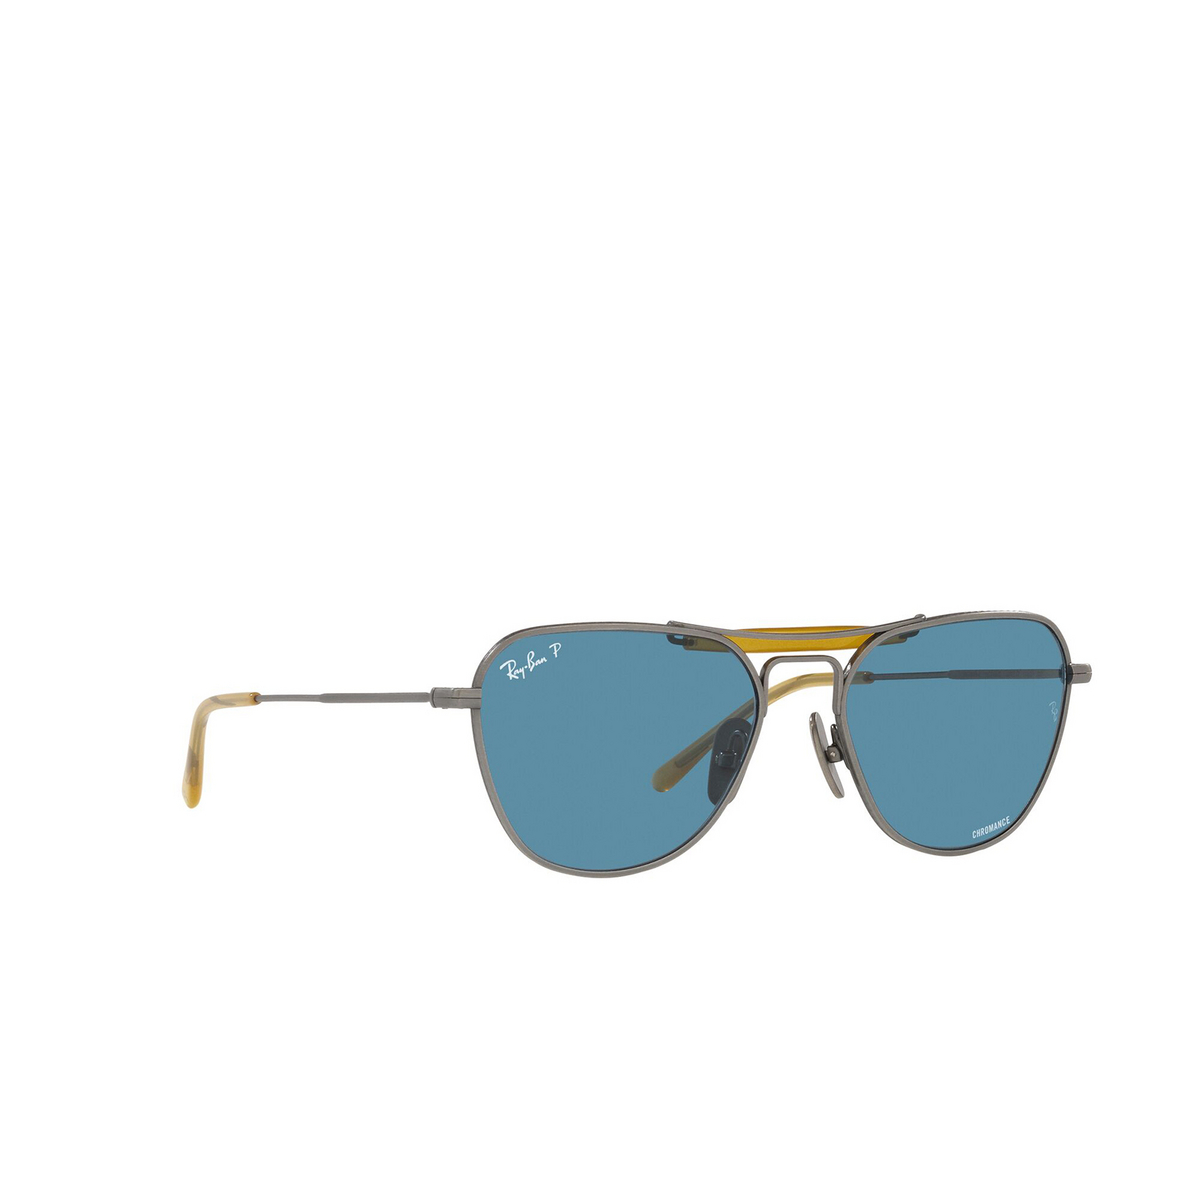 Ray-Ban® Irregular Sunglasses: RB8064 color Demi Gloss Pewter 9208S2 - three-quarters view.